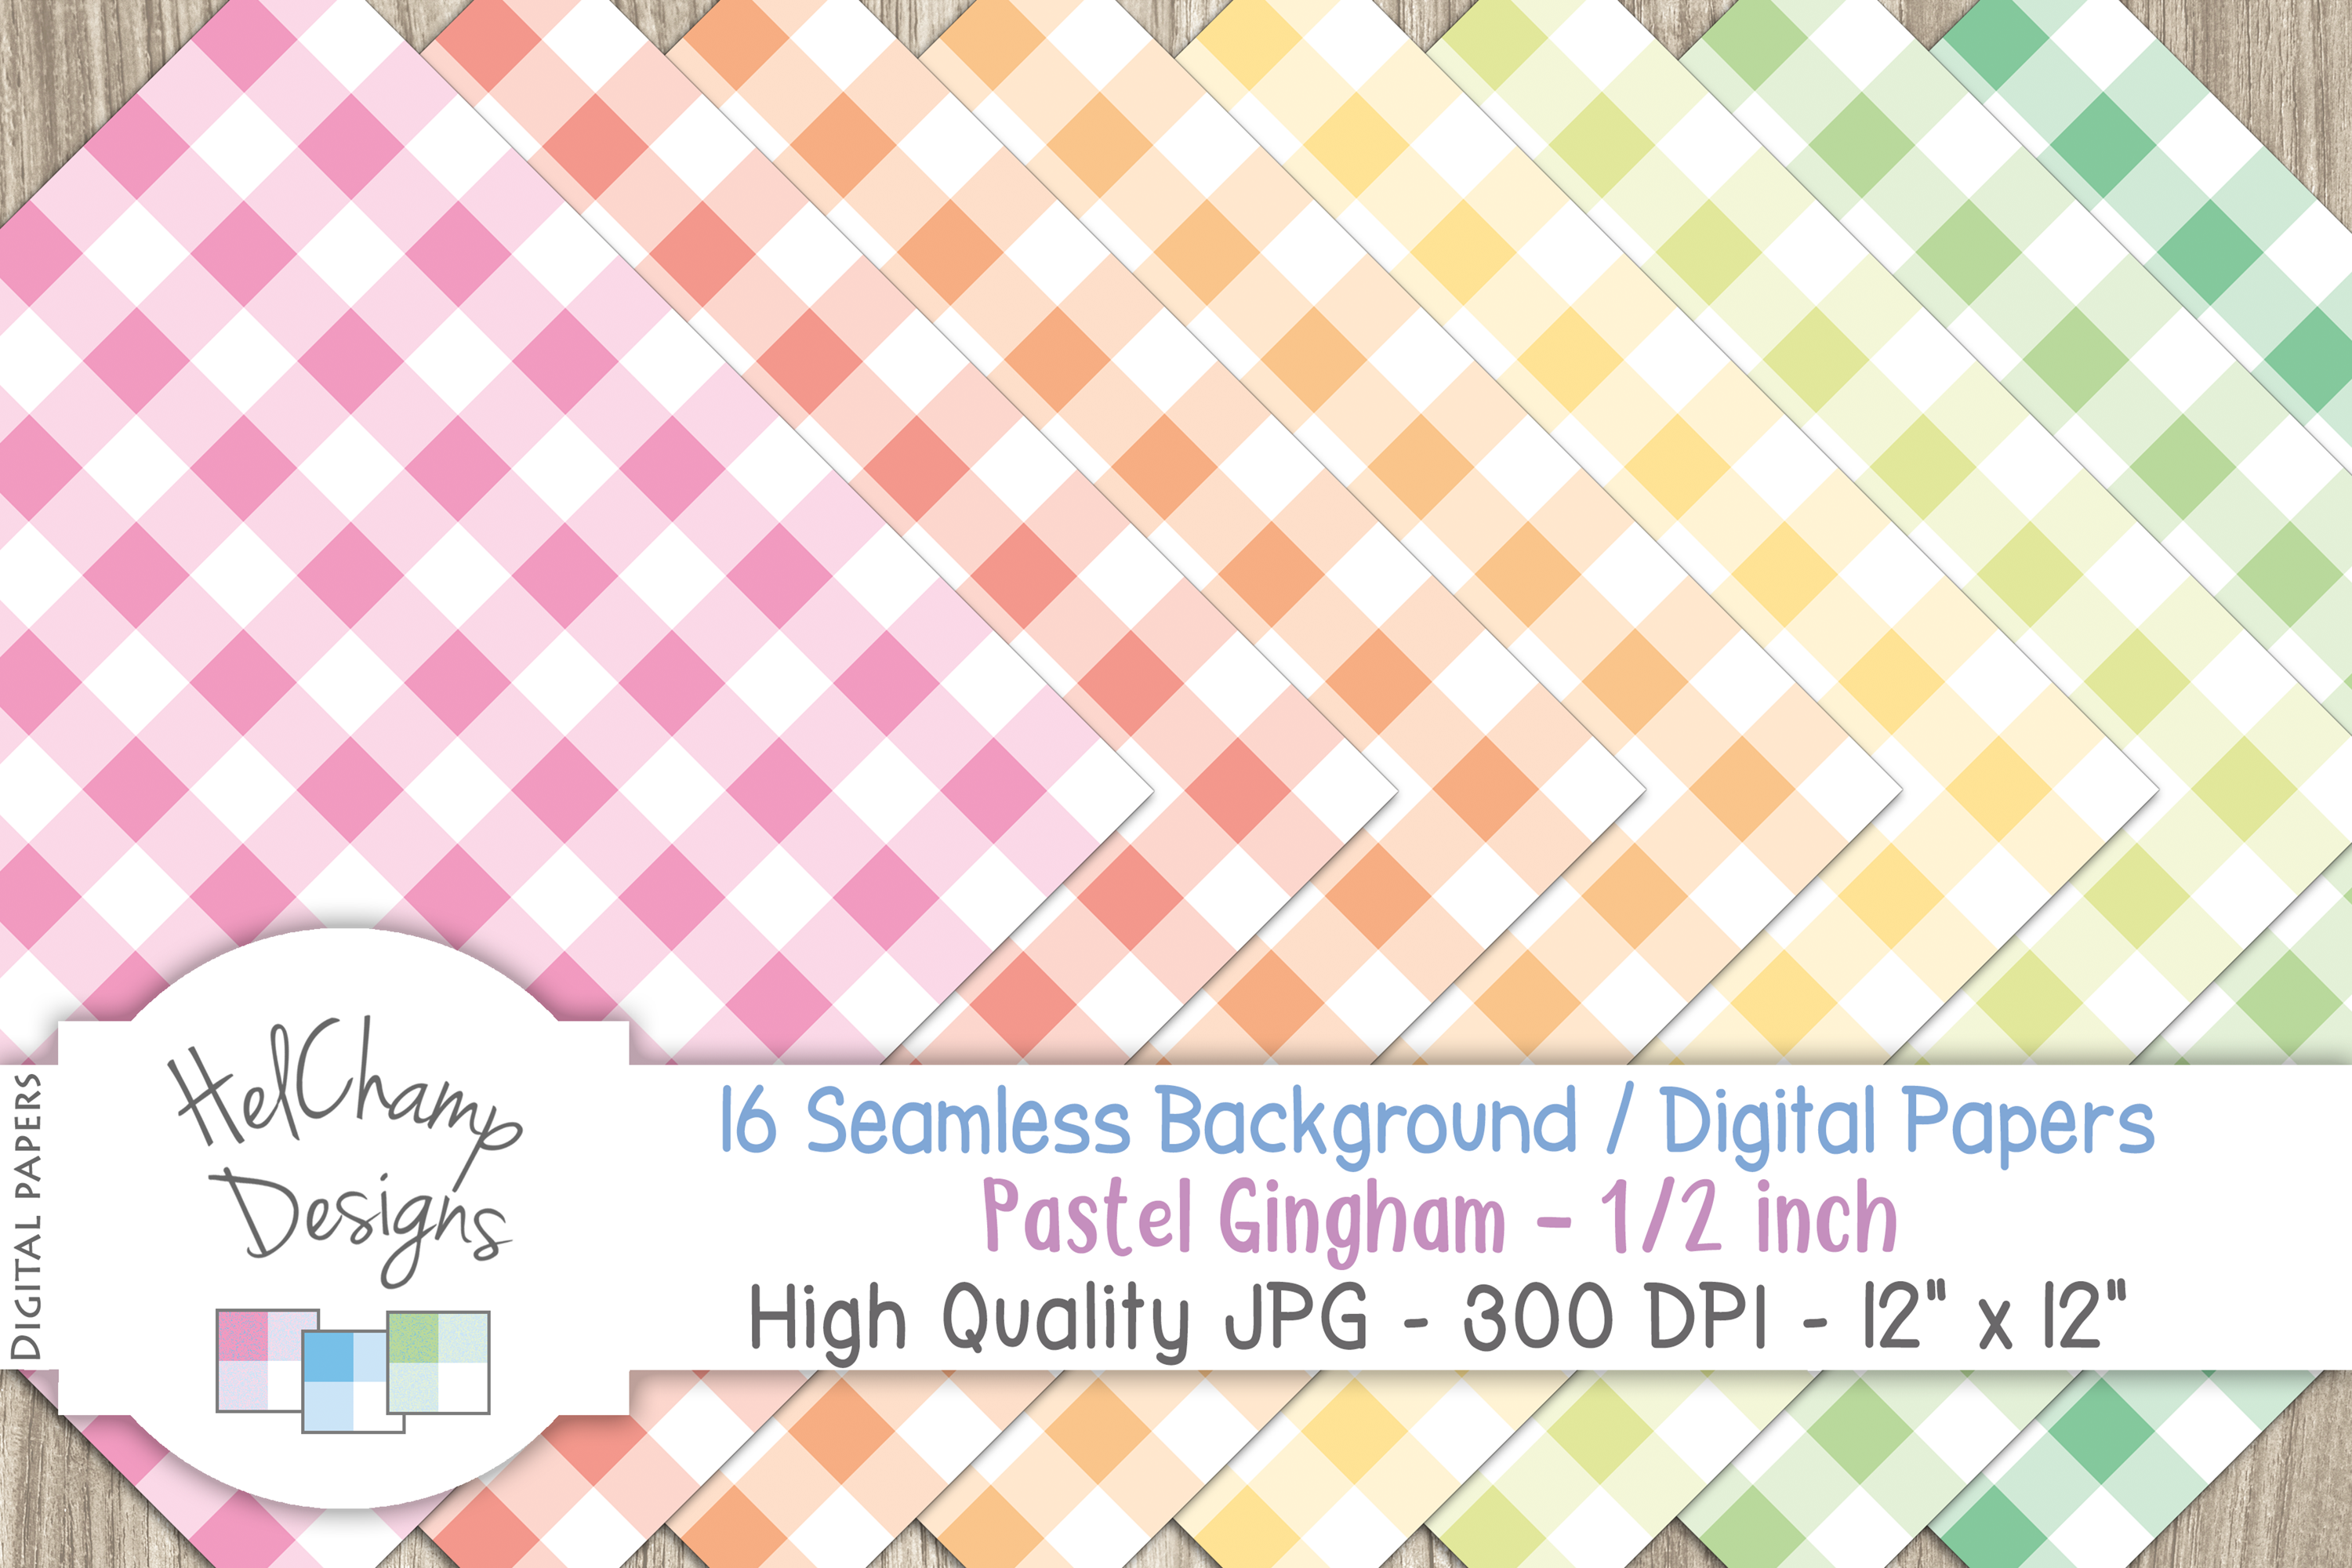 16 seamless Digital Papers - Pastel Gingham 1/2 inch - HC004 example image 3